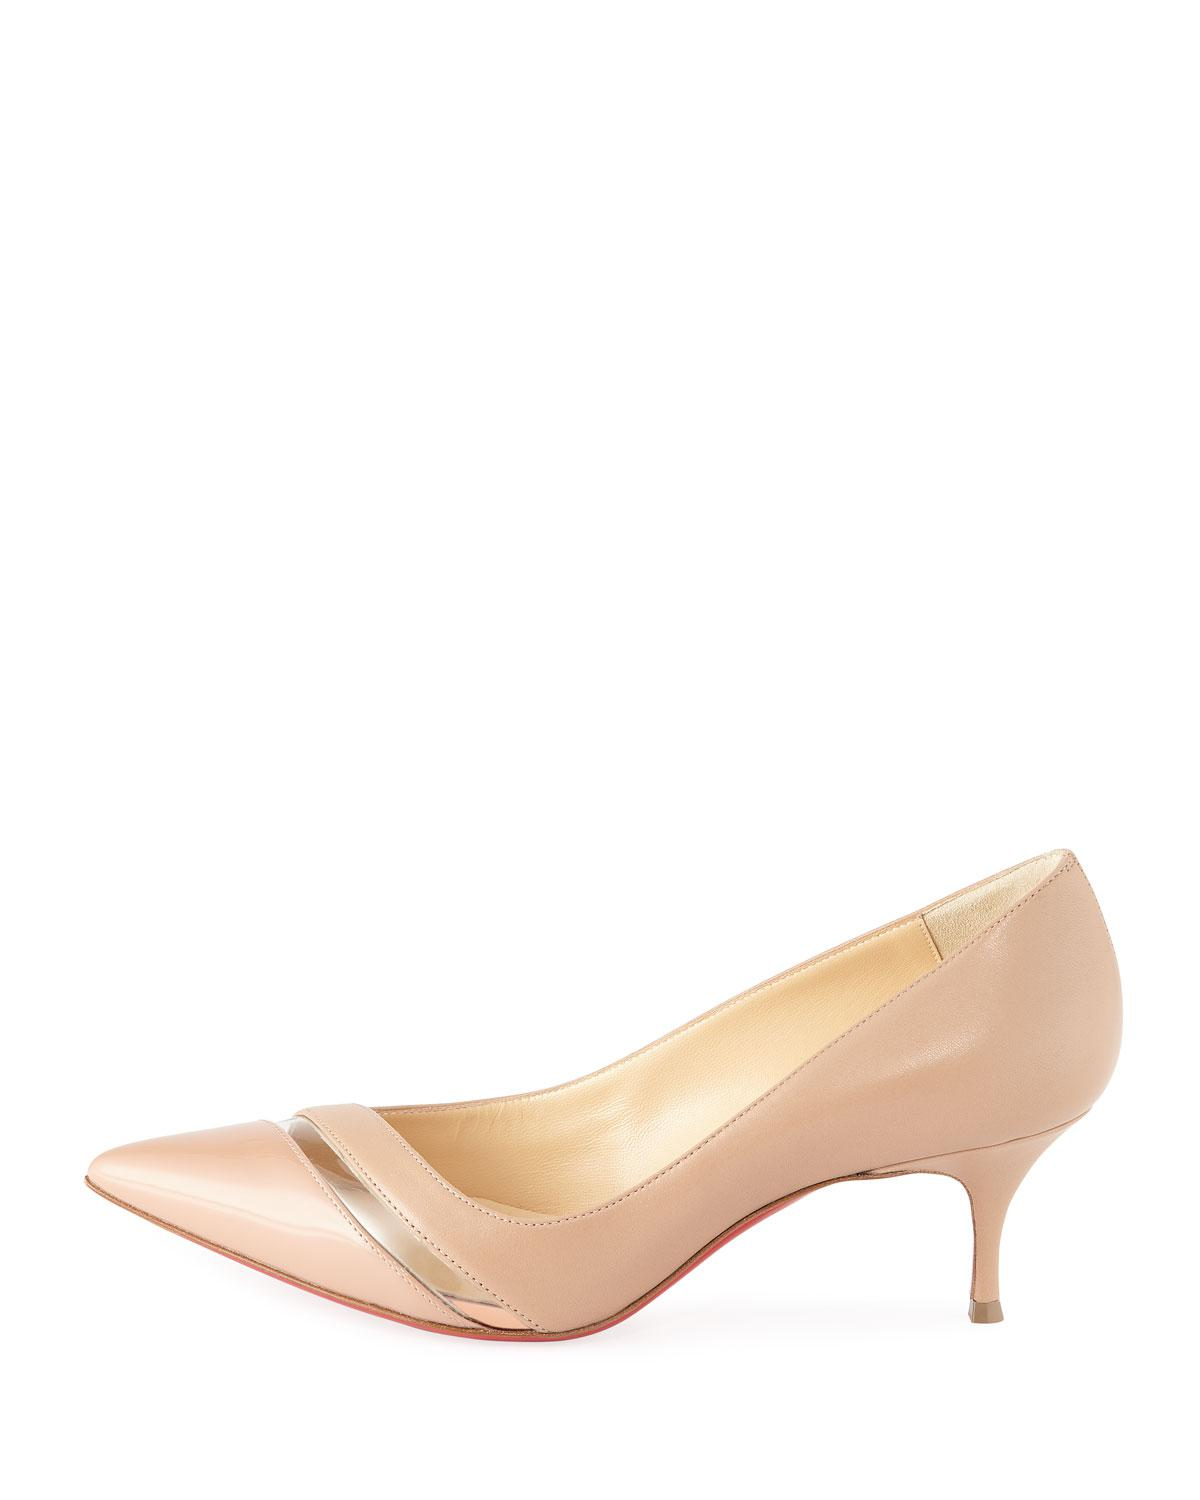 buy popular 7f0a7 64049 Women's Natural 17th Floor Red Sole Pumps